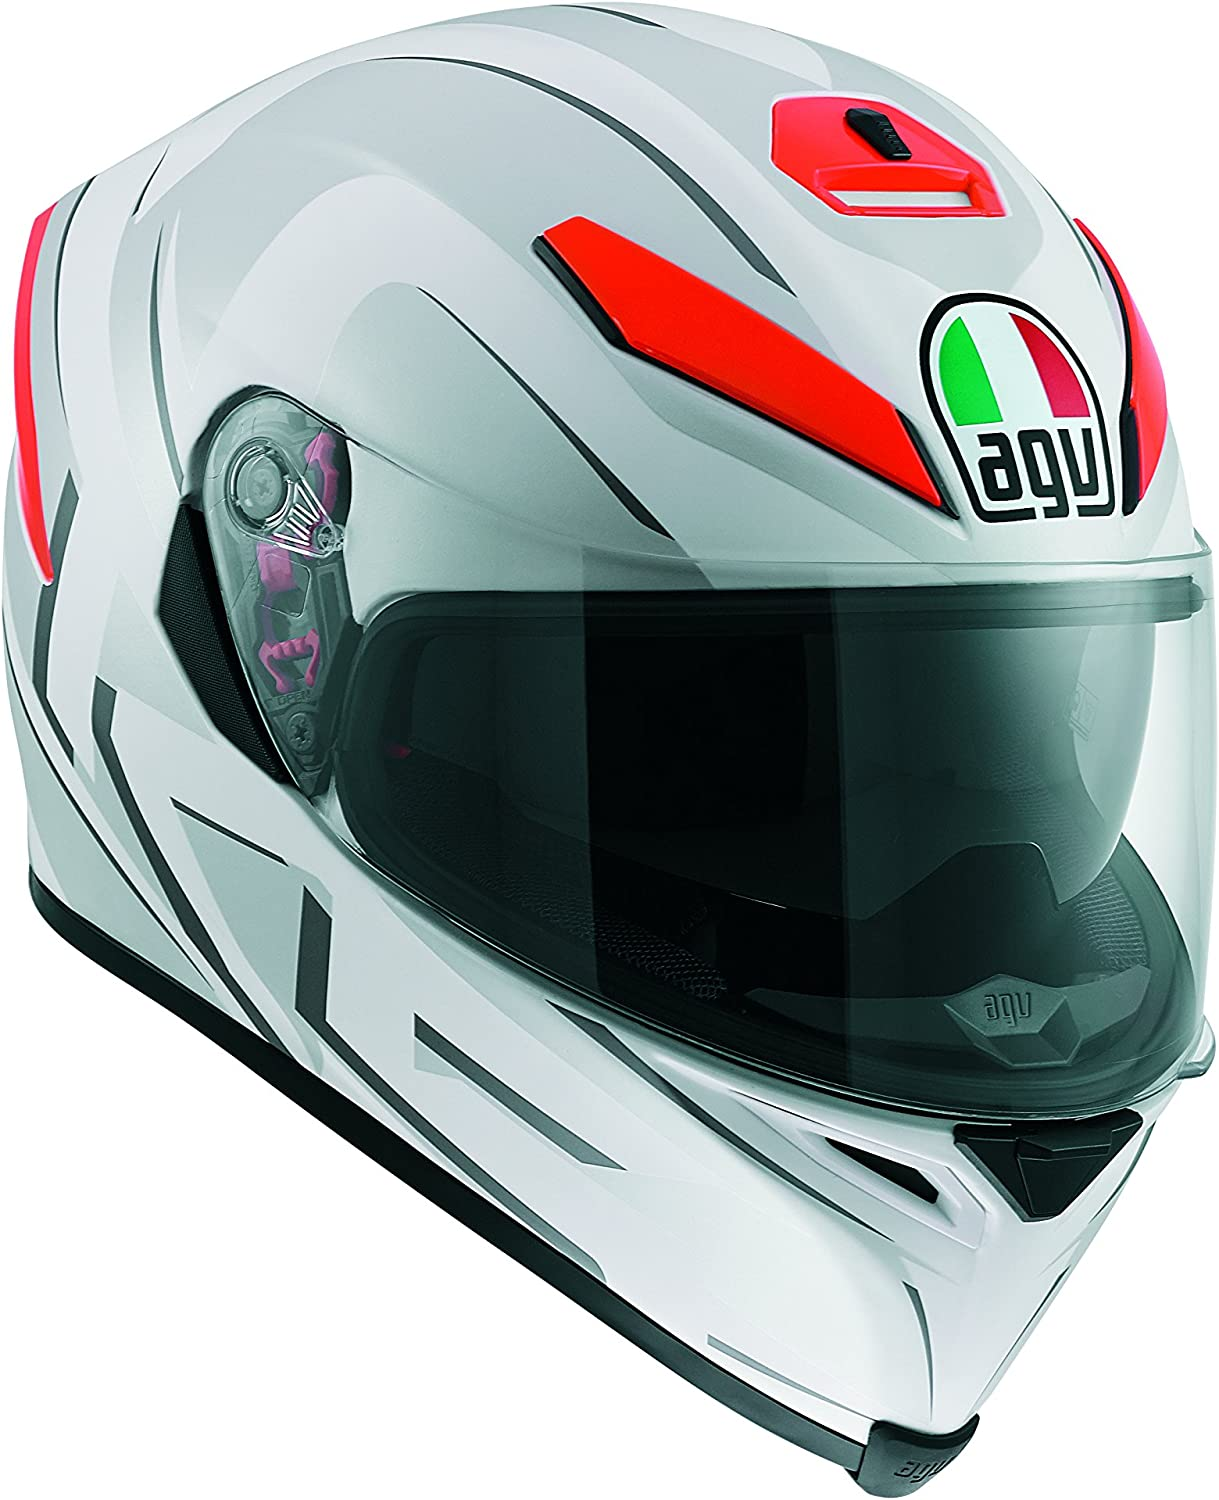 CASCO MOTO INTEGRALE AGV K-5 HURRICANE BLACK//RED HELMET TAGLIA XL 0041A2F0-011-1